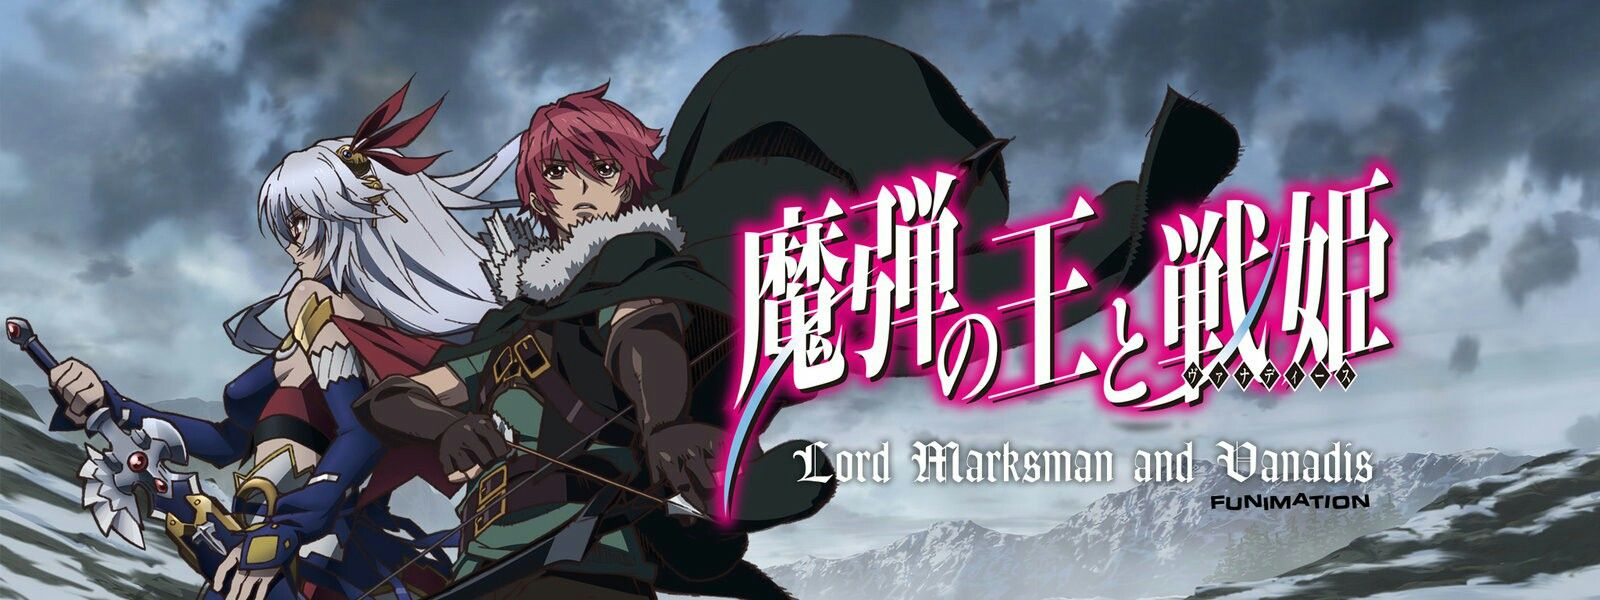 Pin by kyla on good dubbed anime lord marksman and